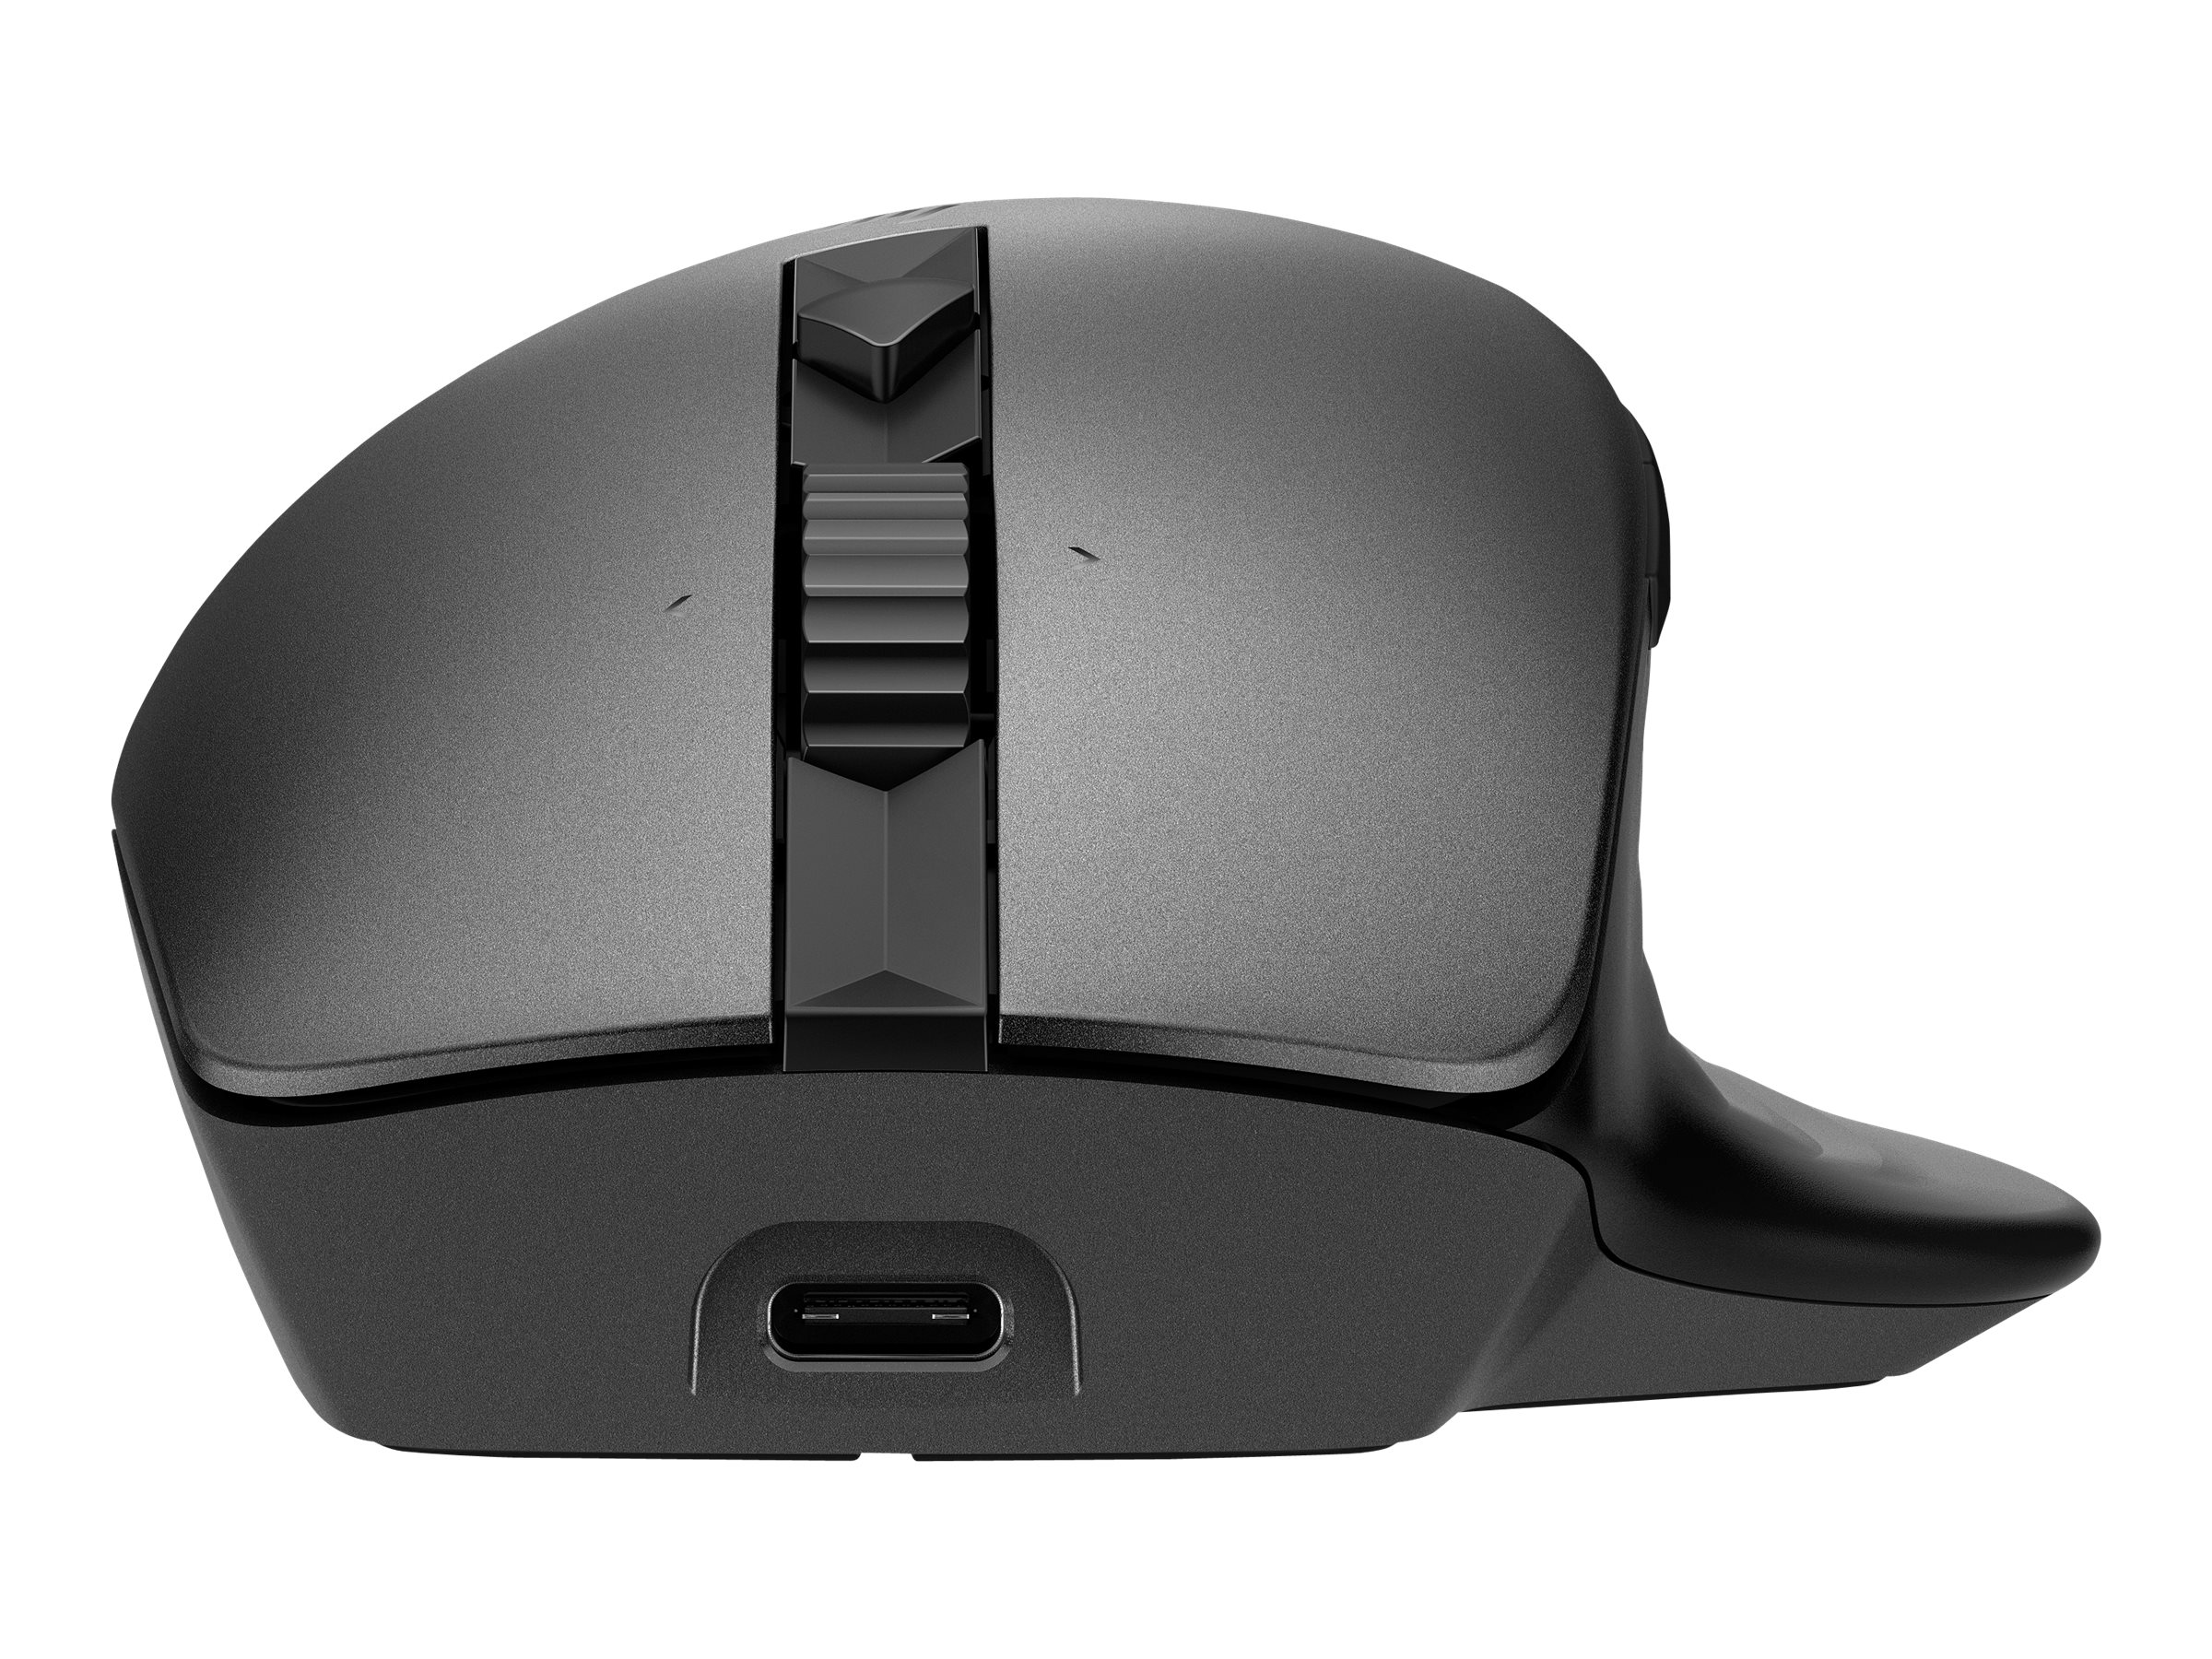 HP Creator 935 - mouse